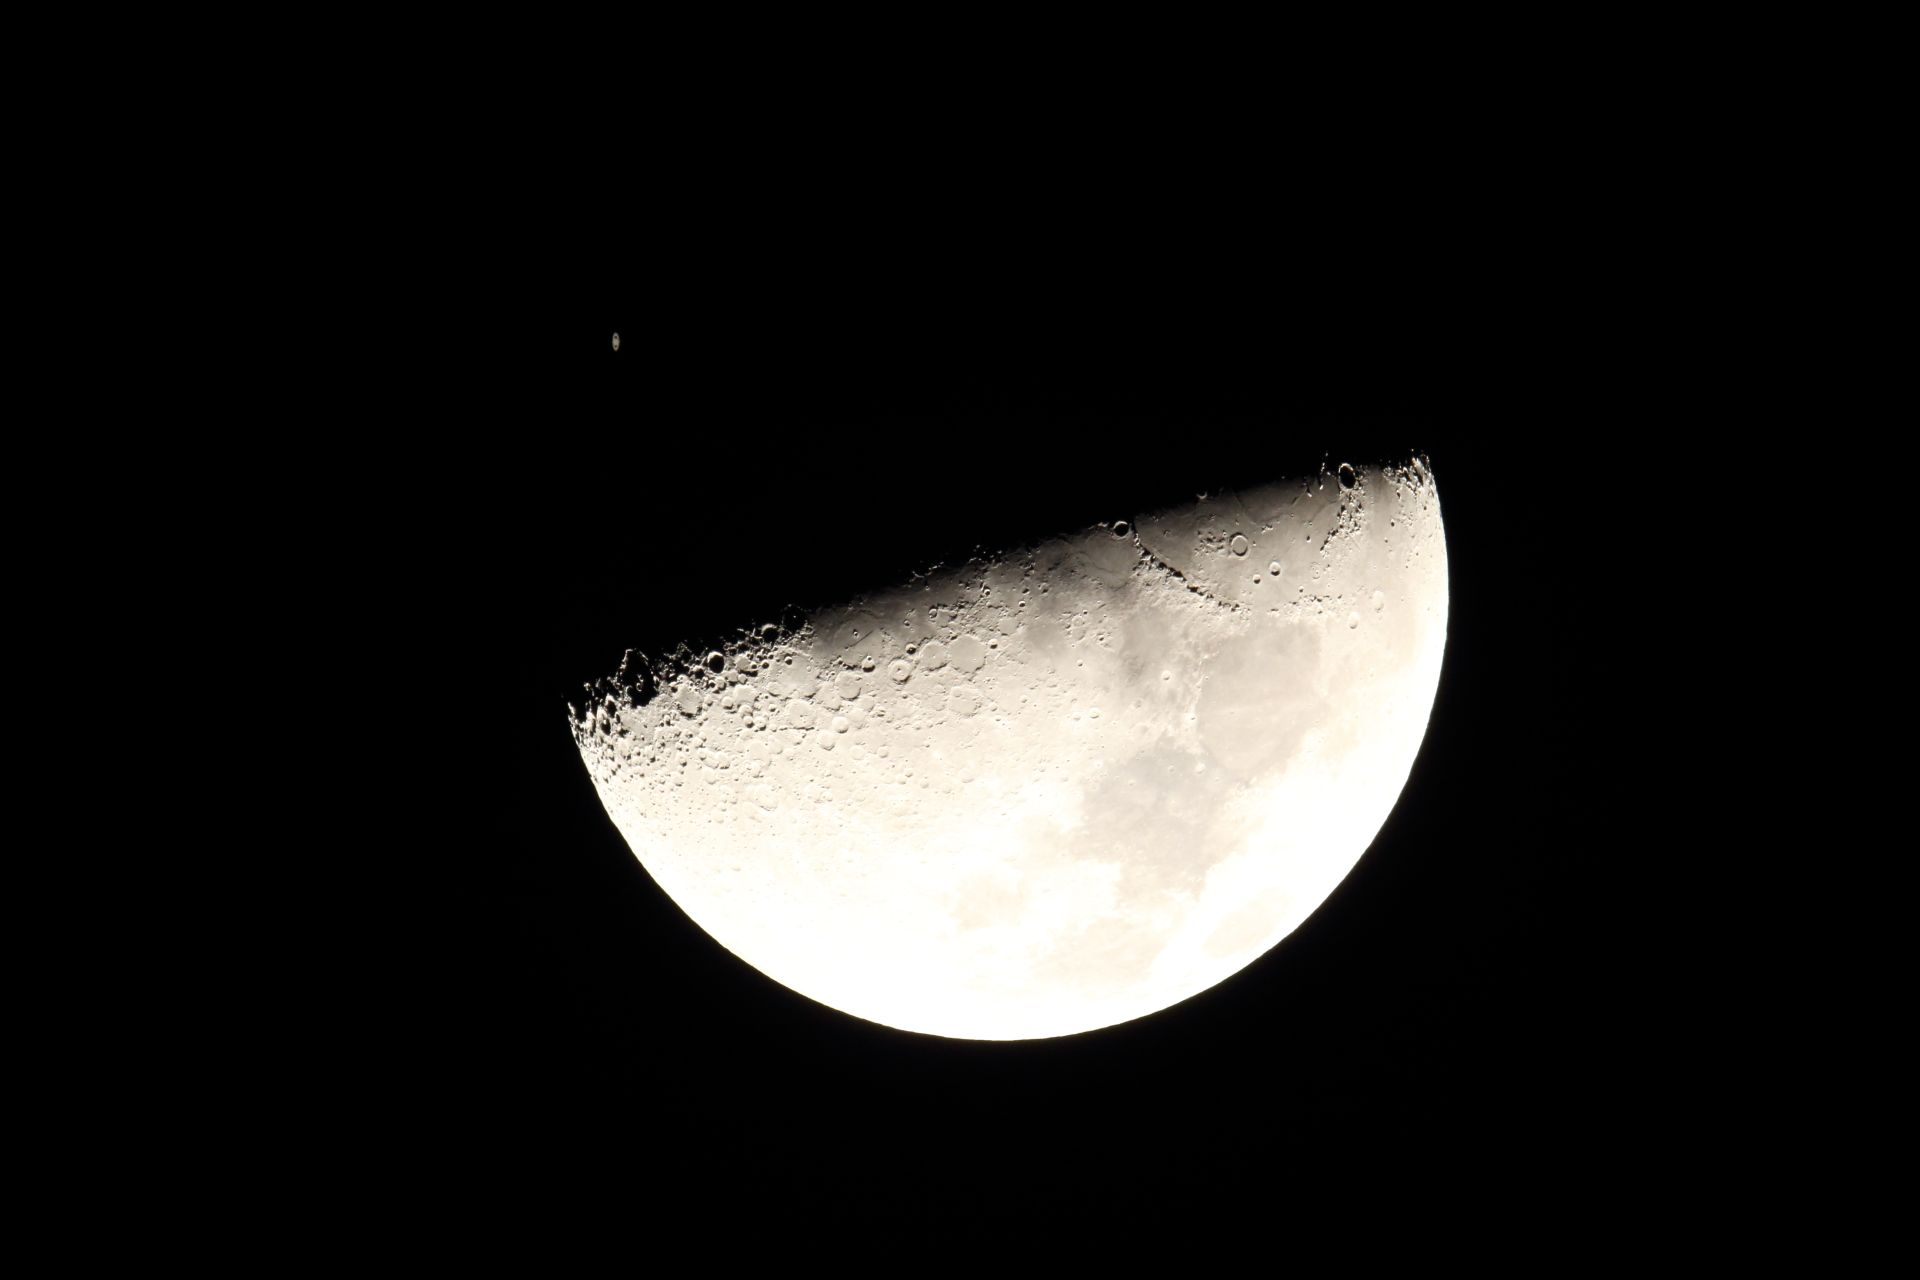 Saturn approaching the Moon